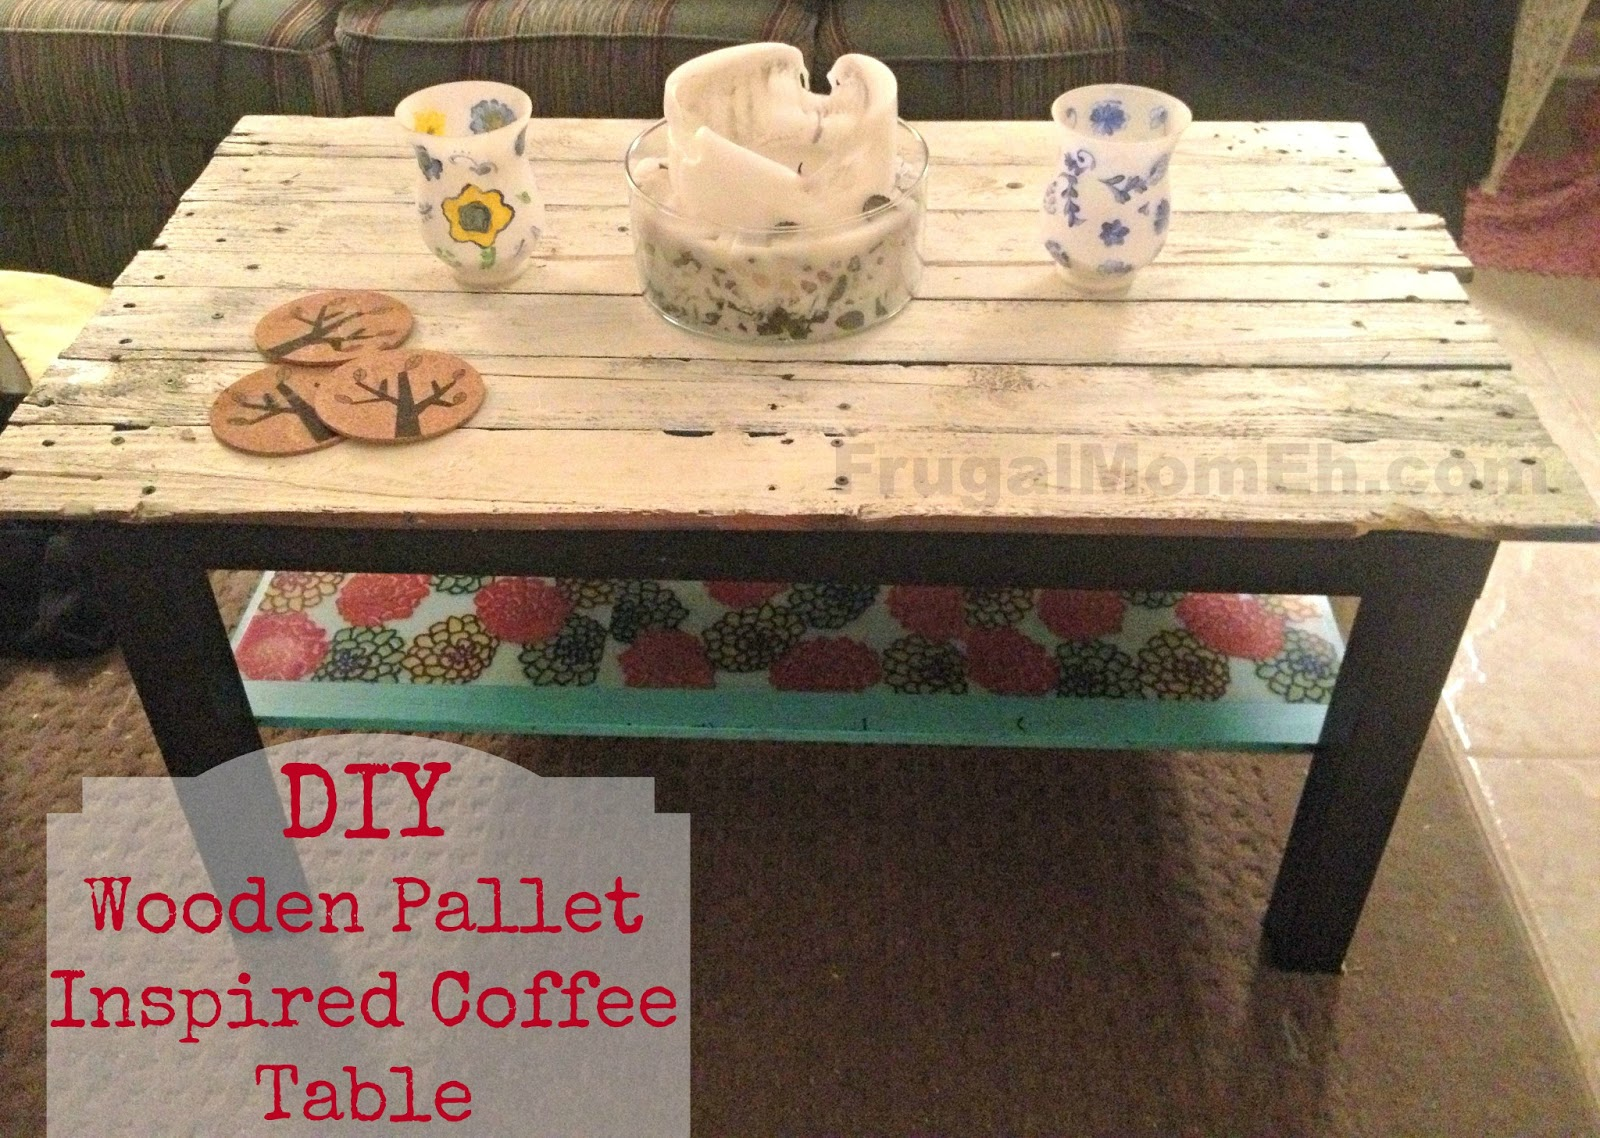 DIY Wooden Pallet Inspired Coffee Table - Frugal Mom Eh!